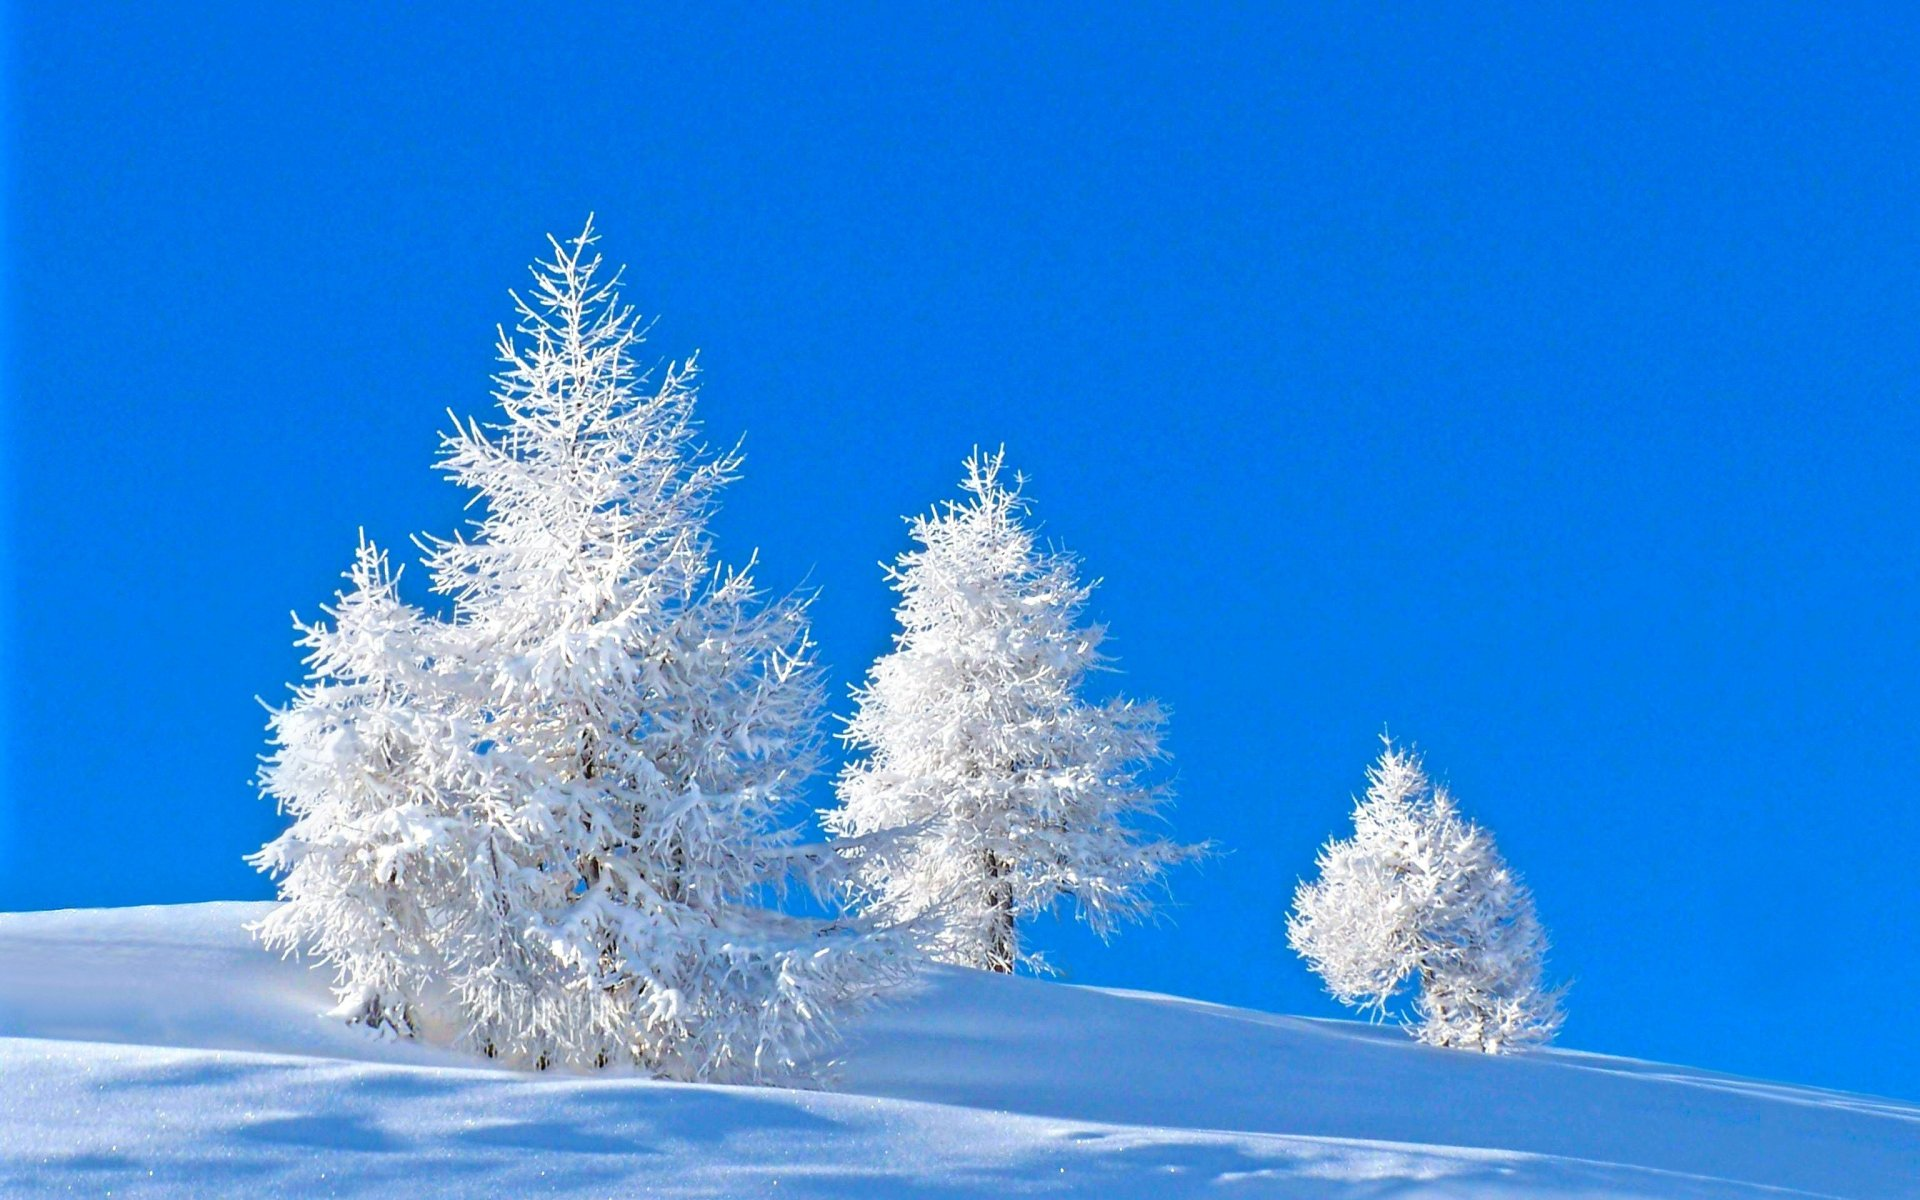 Earth - Winter  Blue Nature Snow Tree White Wallpaper